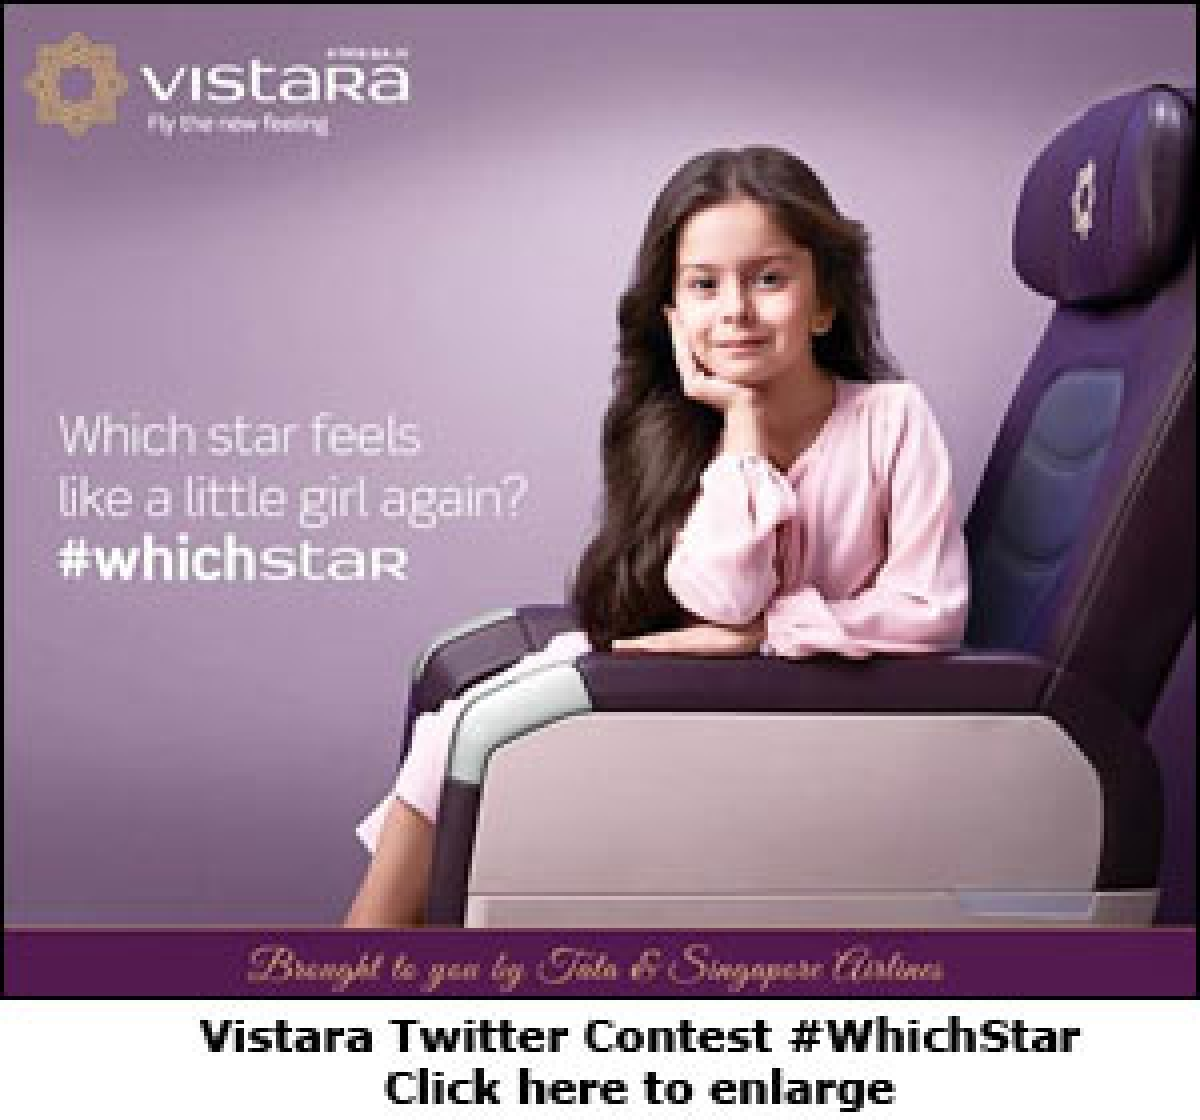 Vistara launches its first television commercial with brand ambassador Deepika Padukone